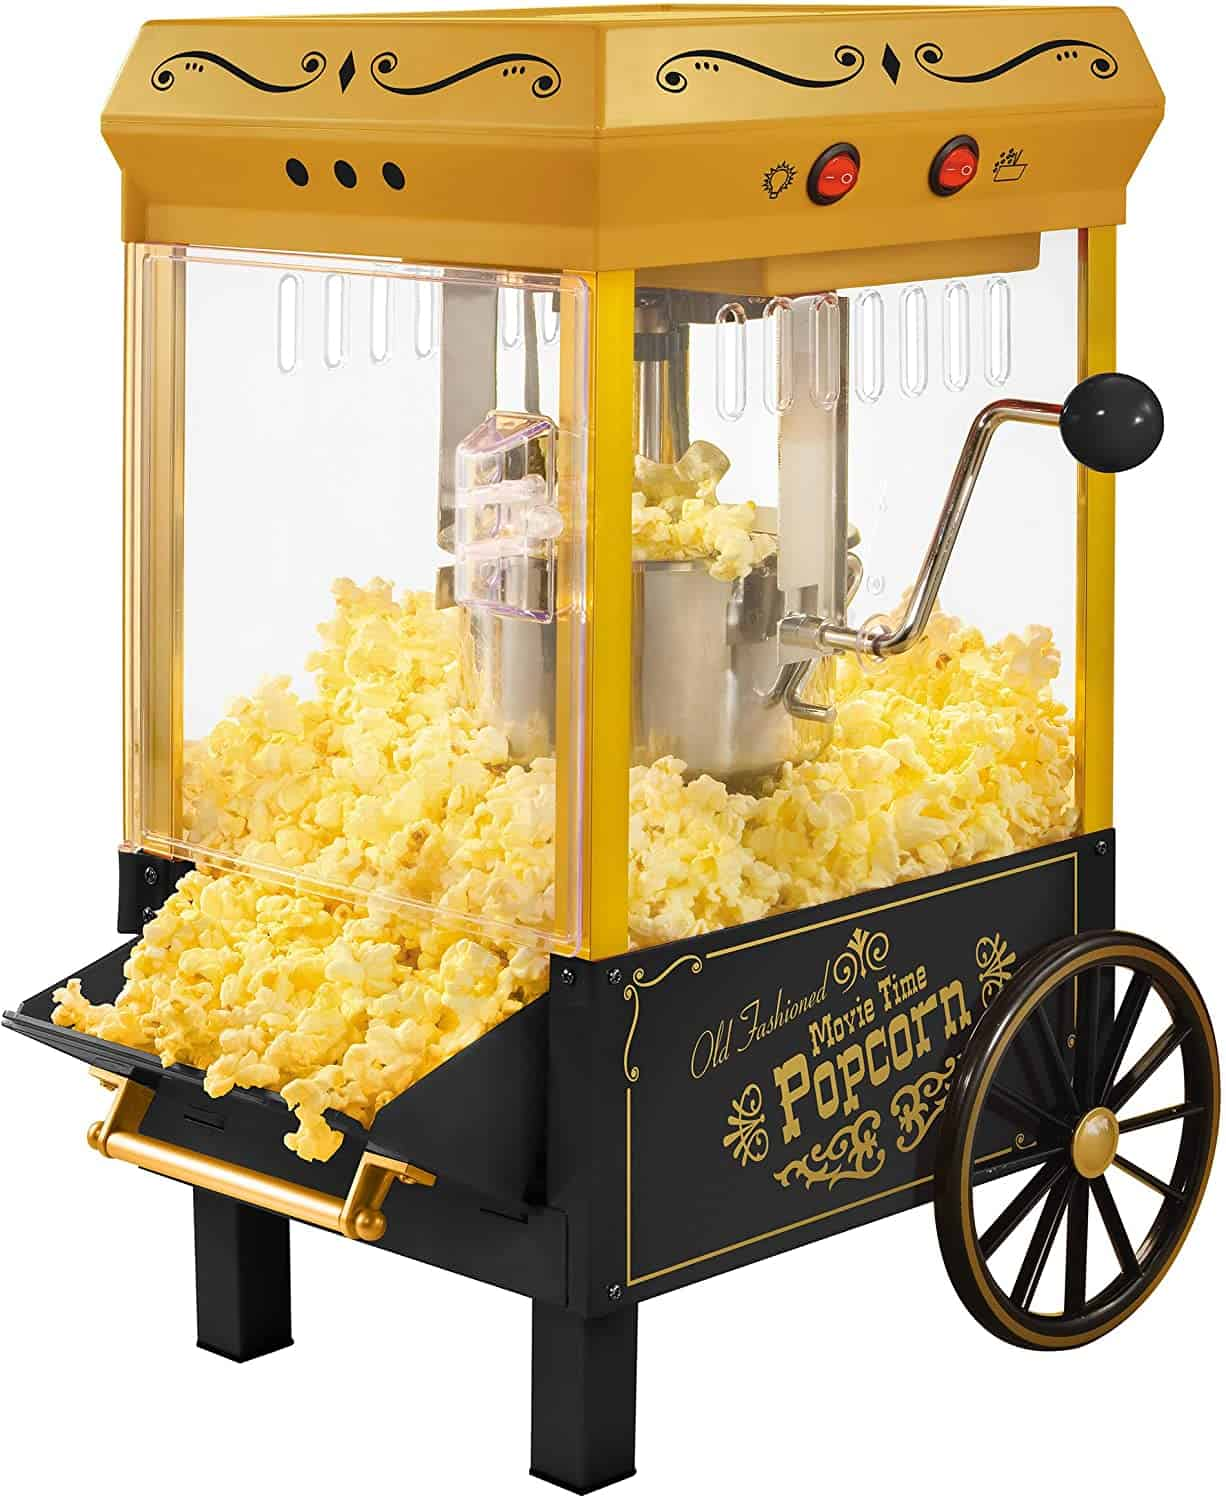 Popcorn Maker in yellow color